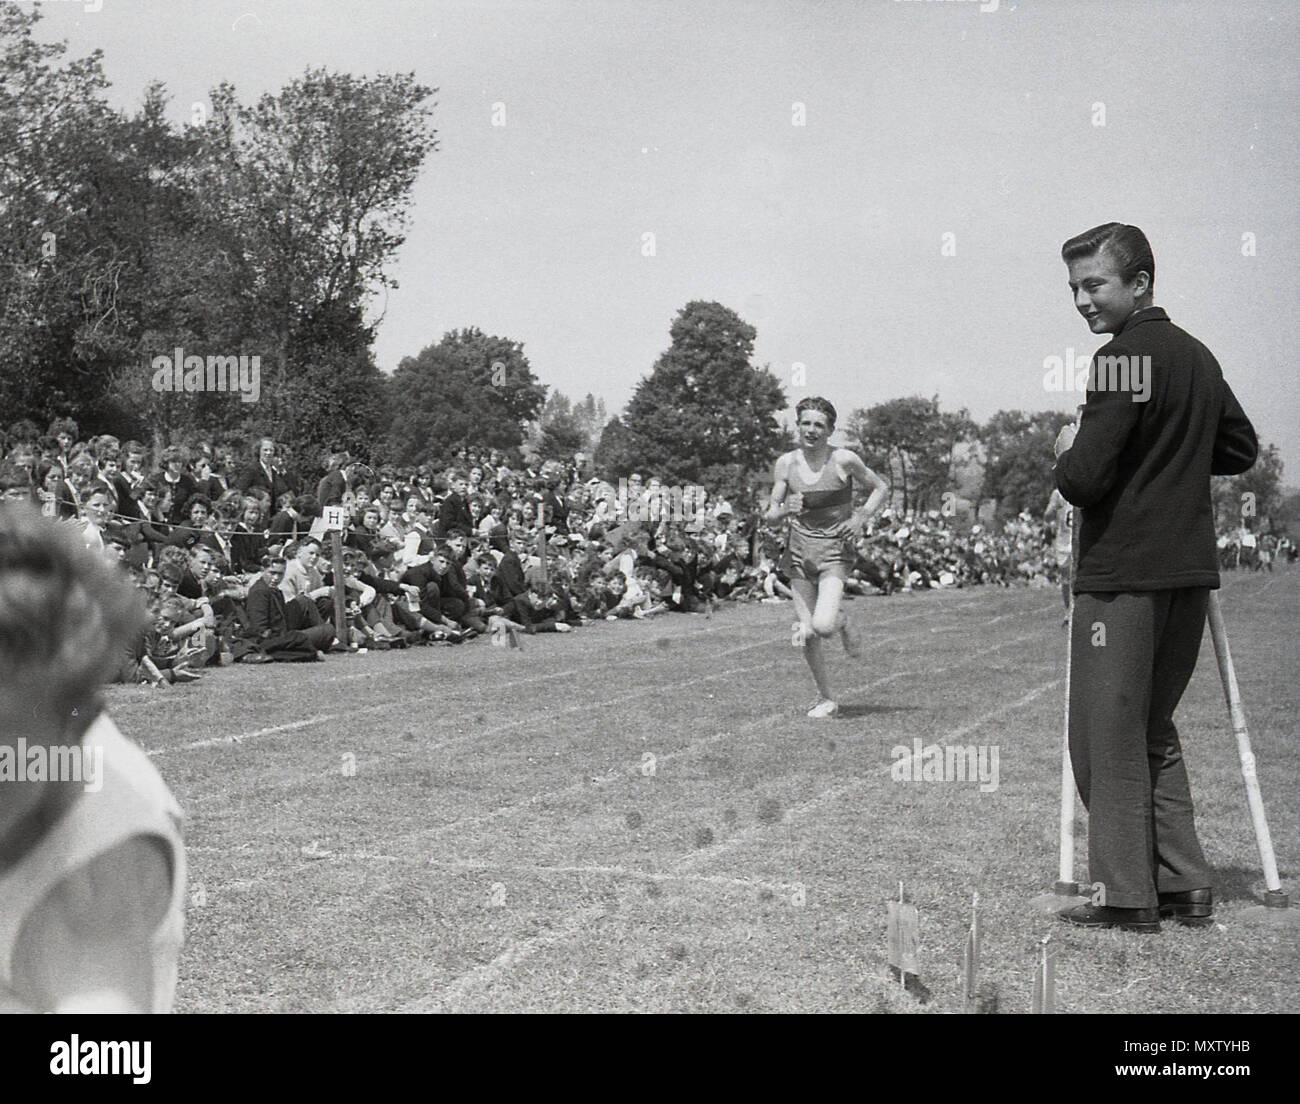 1960, historical picture of secondary school boys taking part in a running race at an inter-school county sports day, Dorset, England, UK. The winner of this grass track race appears to be falling down after the finishing line. - Stock Image